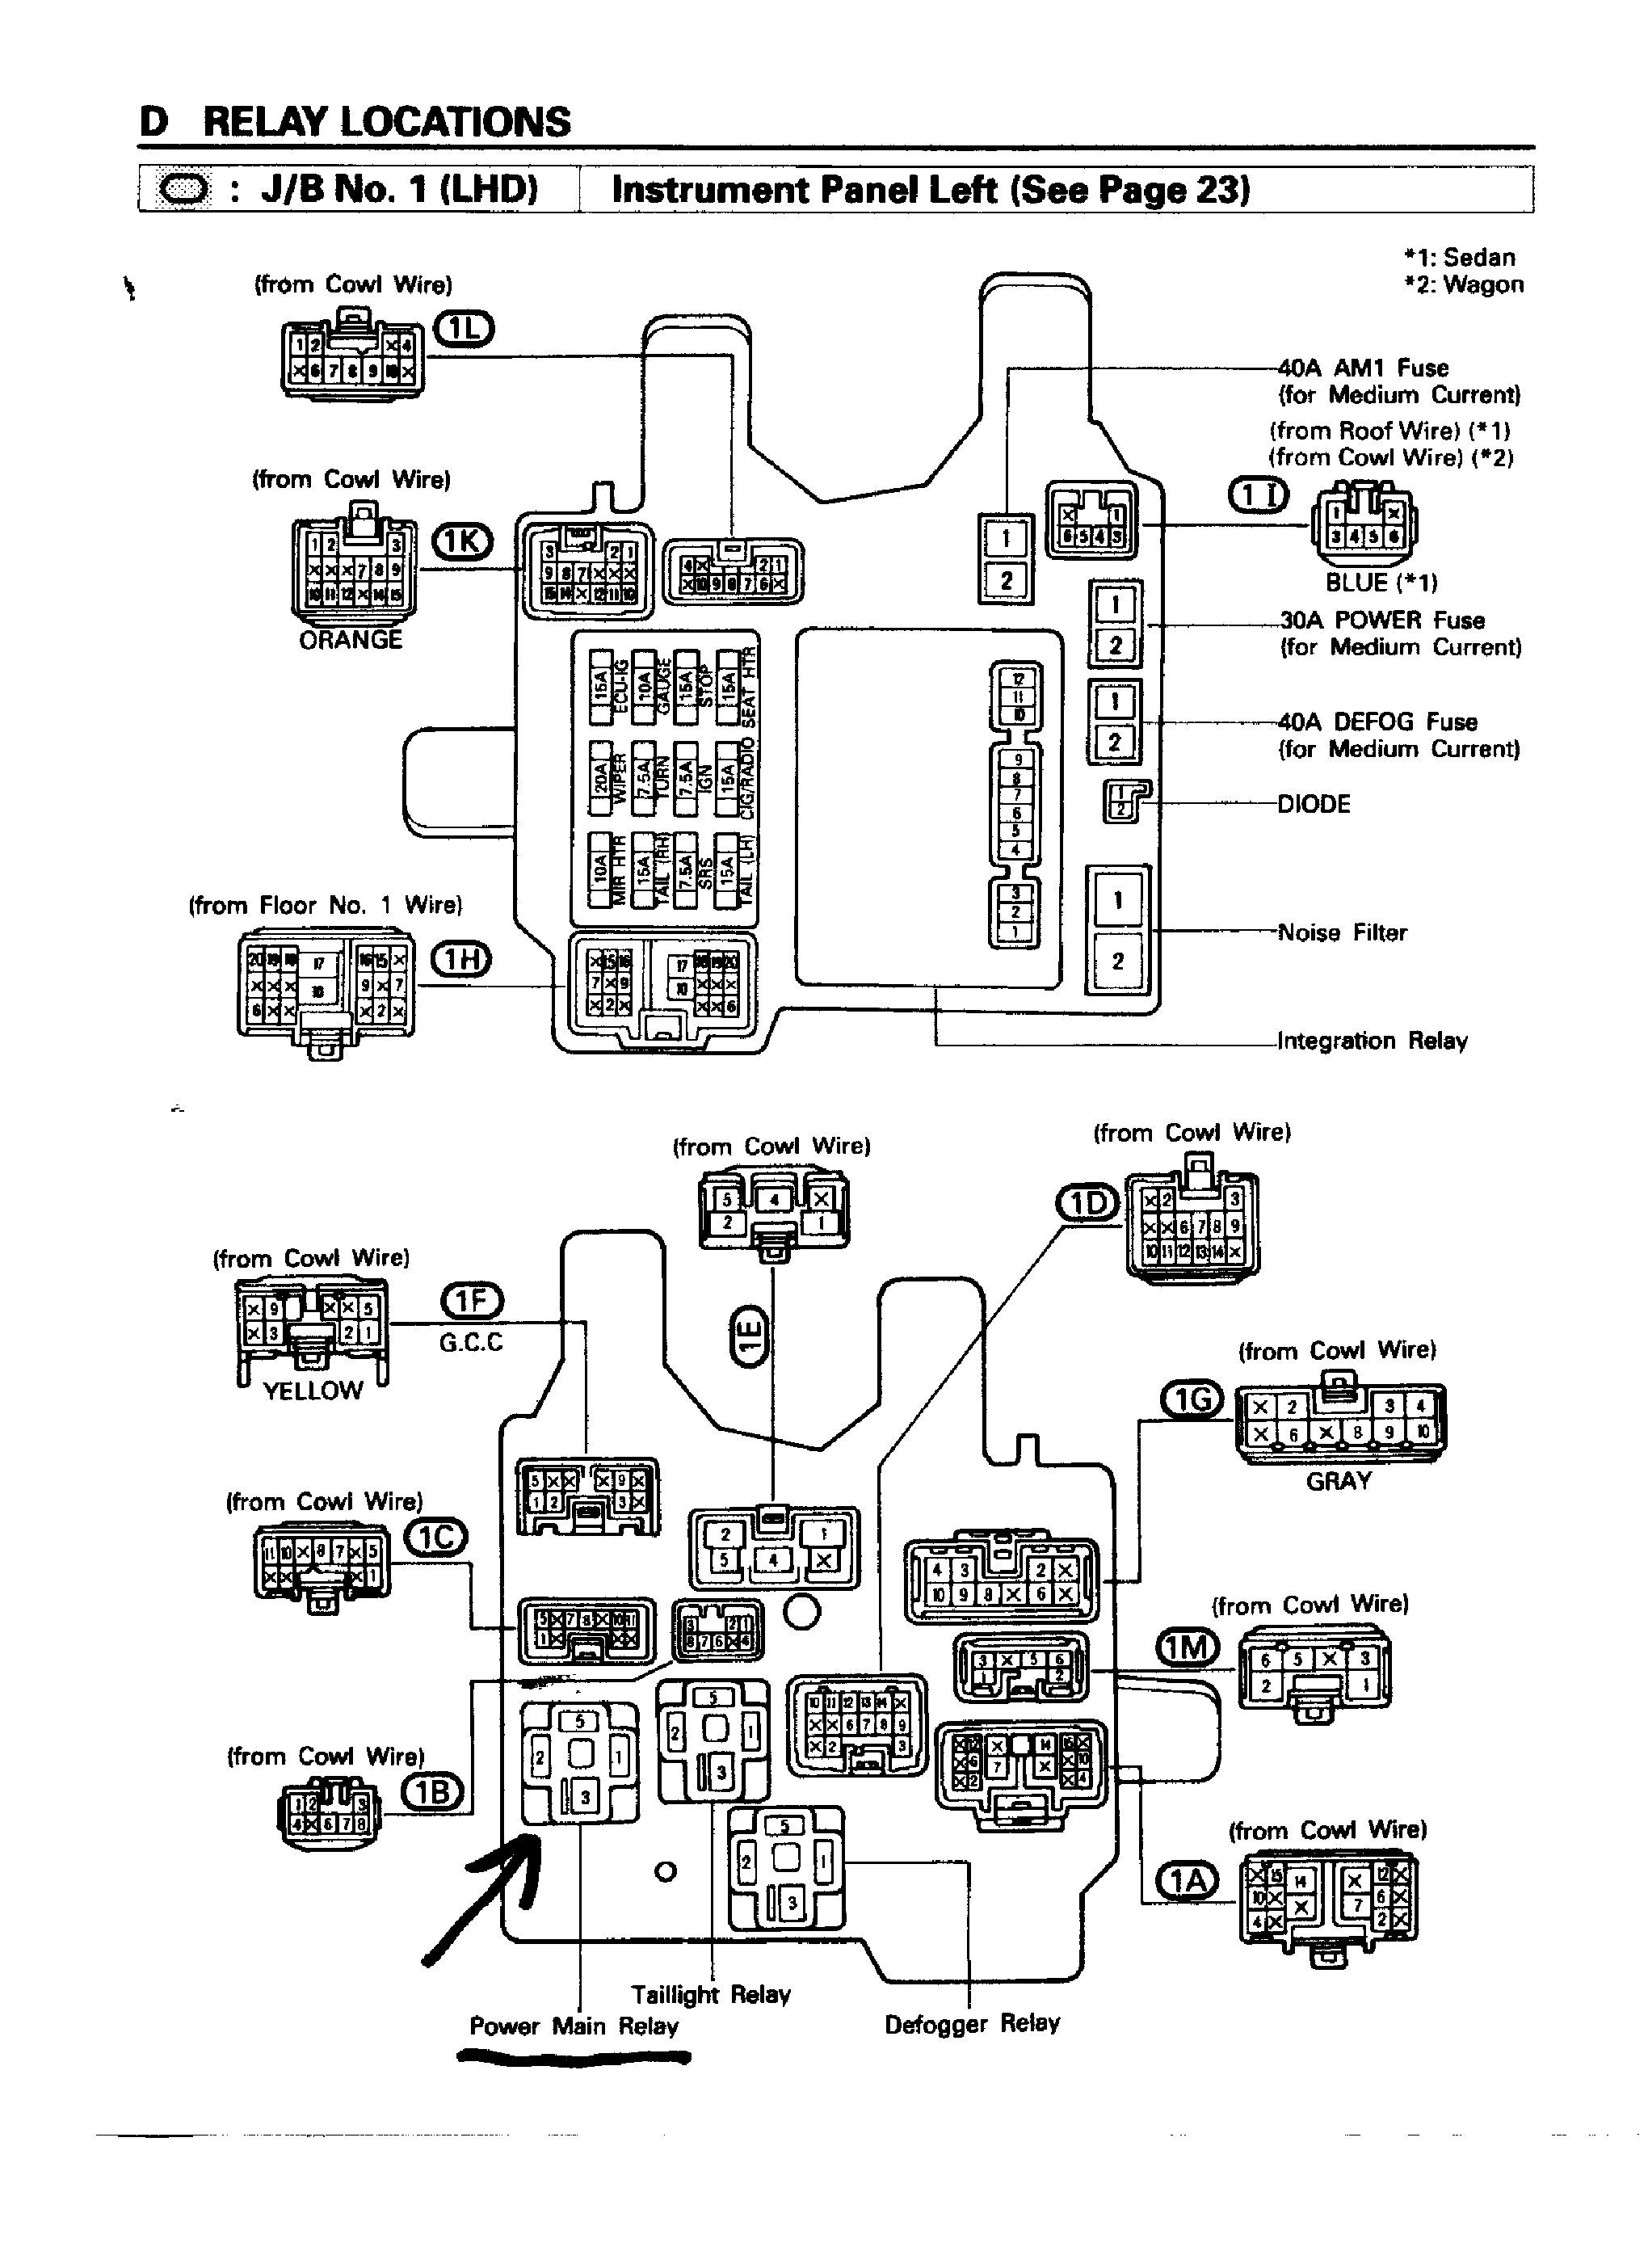 2008 Toyota Tacoma Alternator Wiring Diagram Getting Ready With 2012 Toyota Tacoma Wiring Harness Diagram 13 Toyota Alternator Denso Alternator